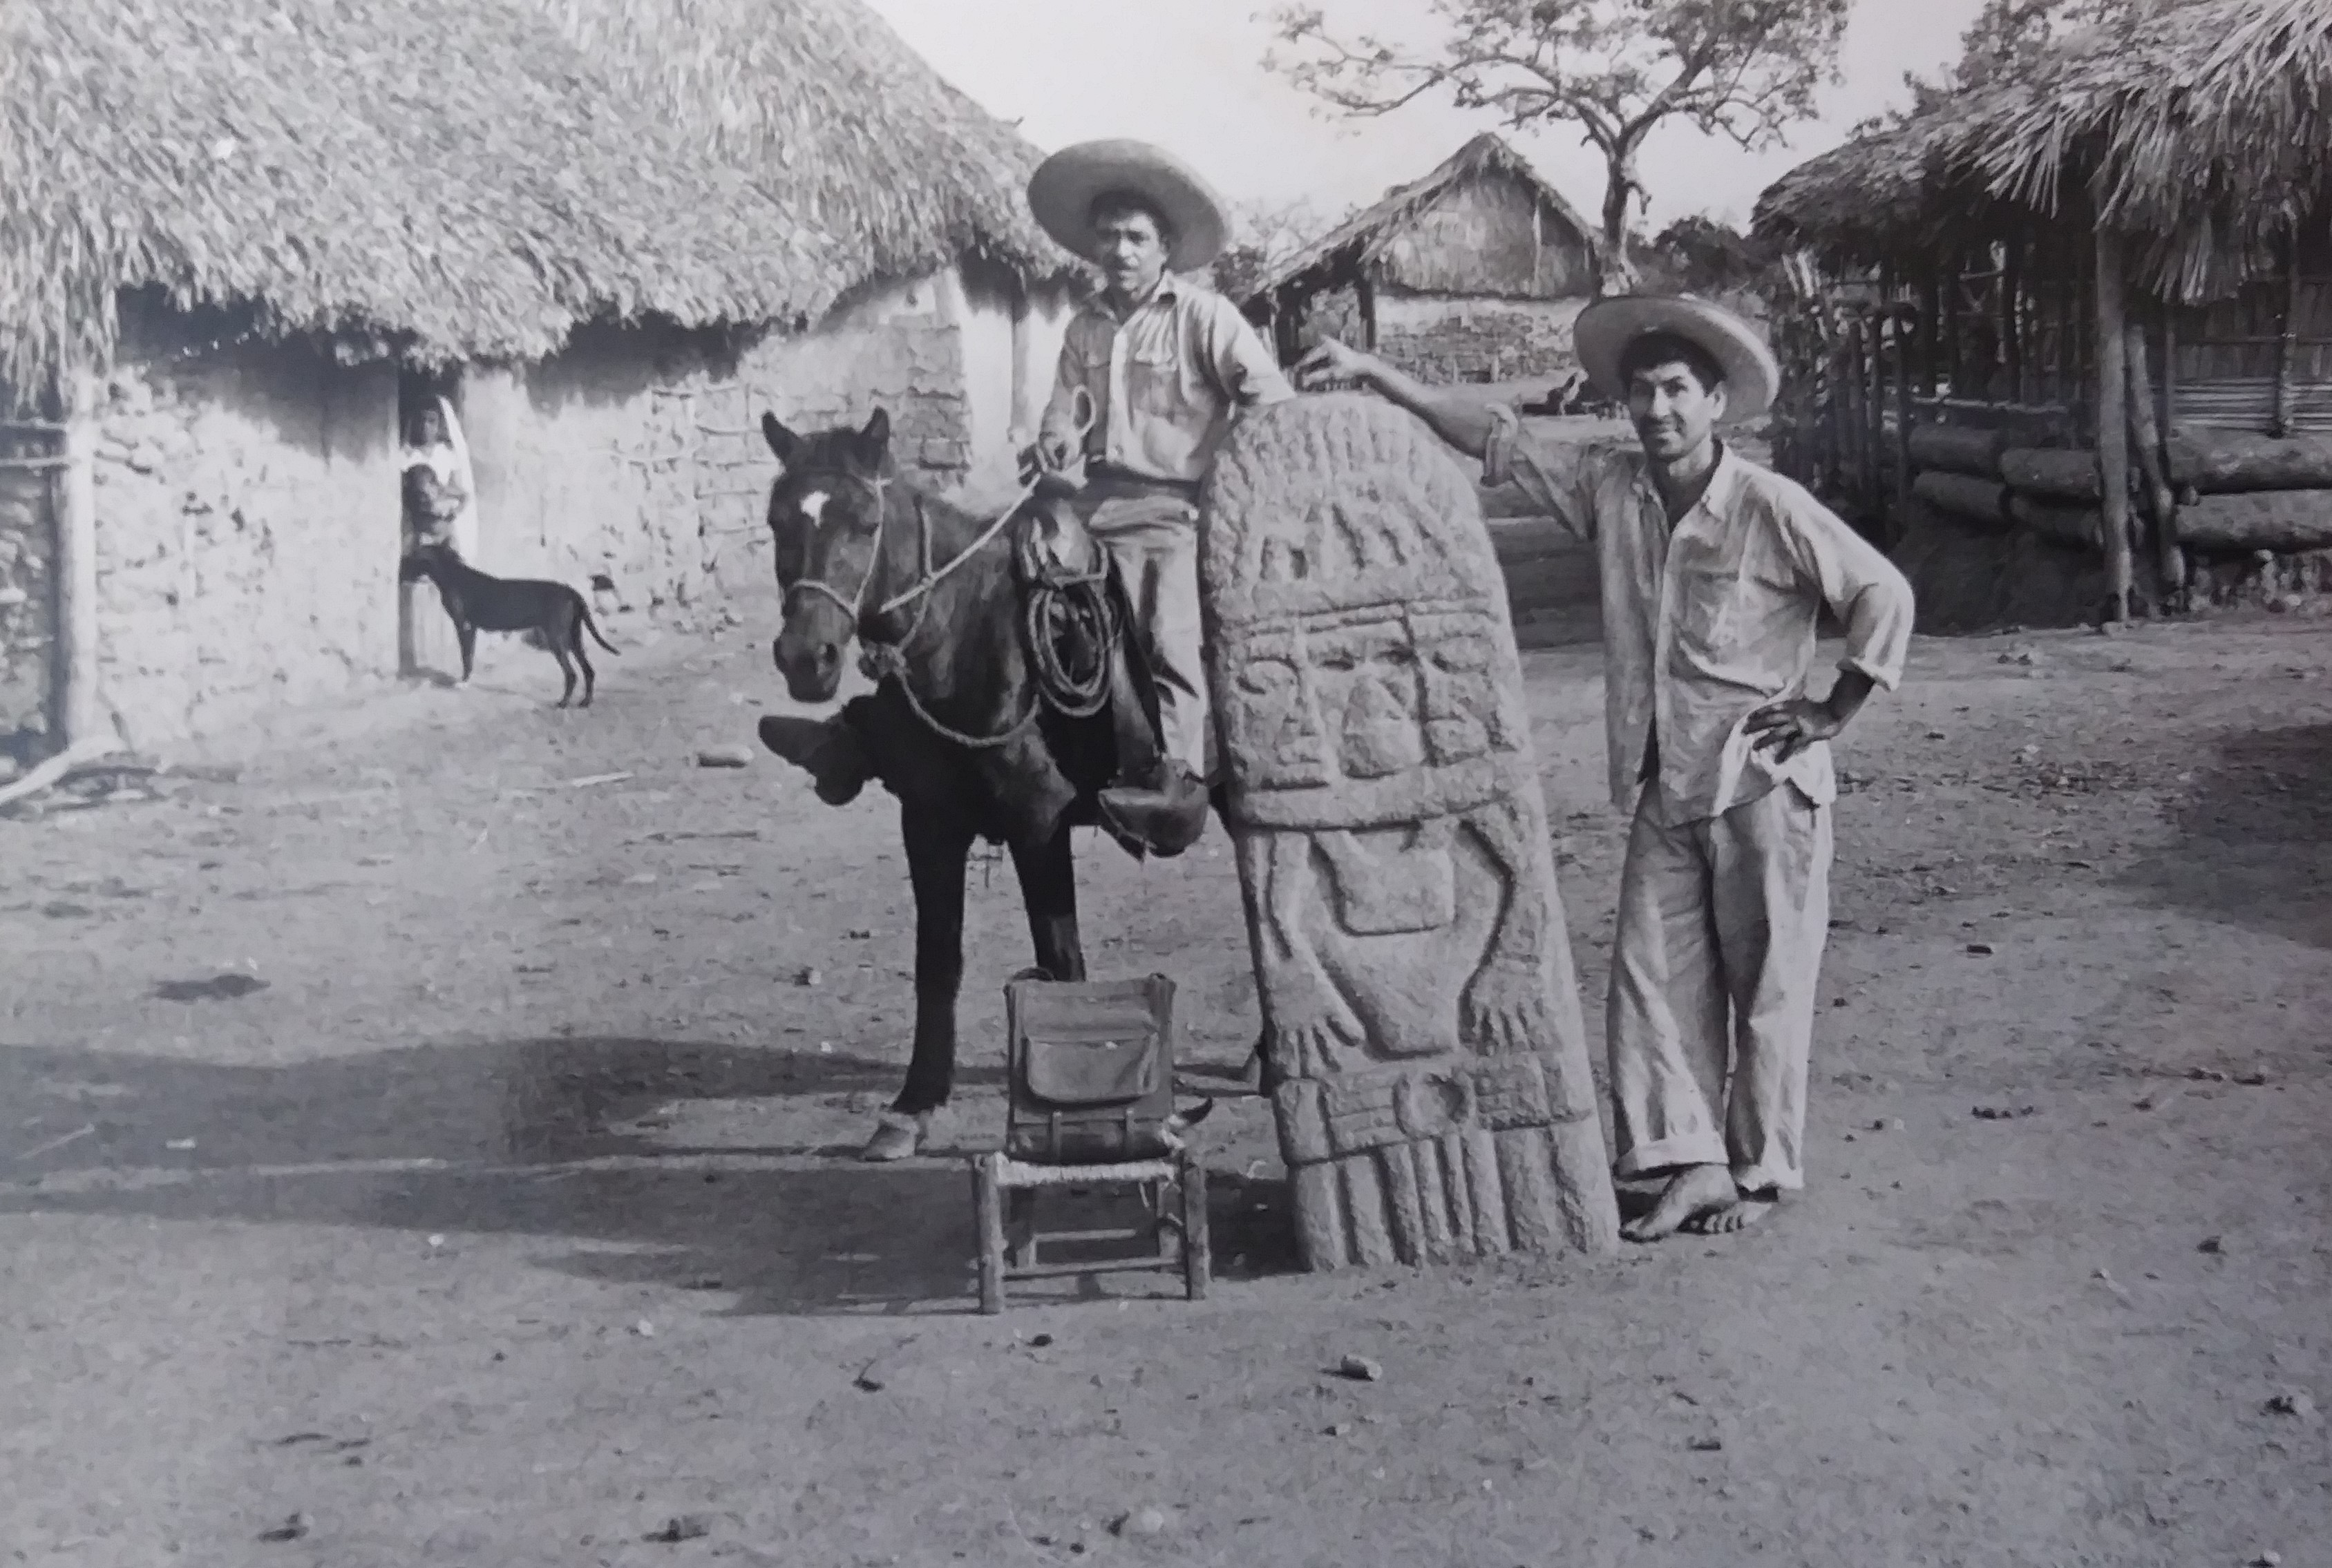 Two men, one standing and one sitting on a horse, with a stele in La Soledad de Maciel, Guerrero, Mexico